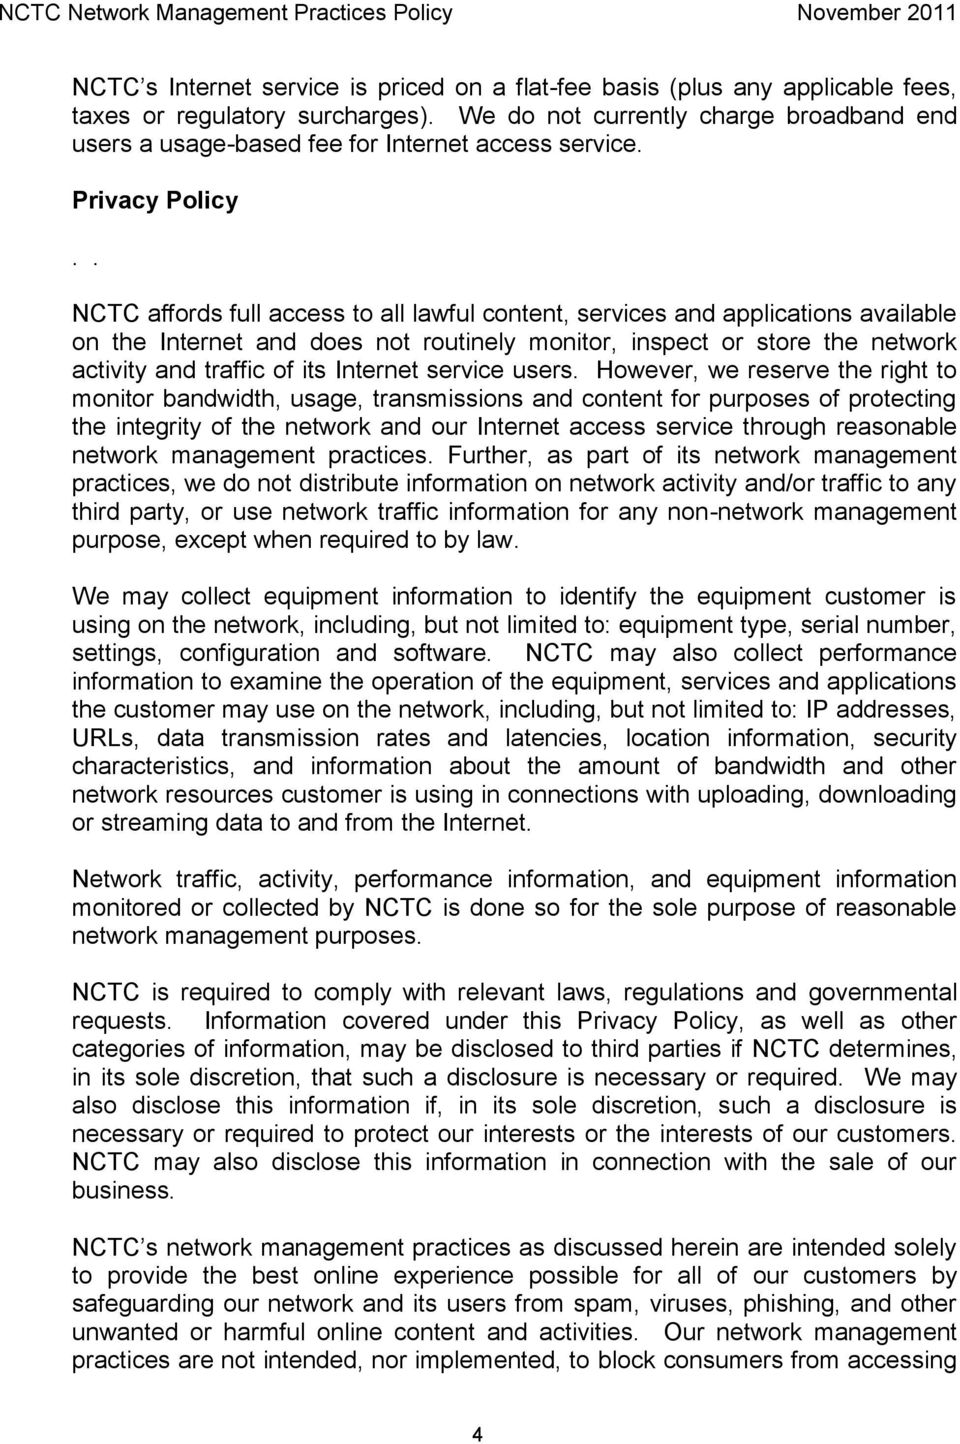 . NCTC affords full access to all lawful content, services and applications available on the Internet and does not routinely monitor, inspect or store the network activity and traffic of its Internet